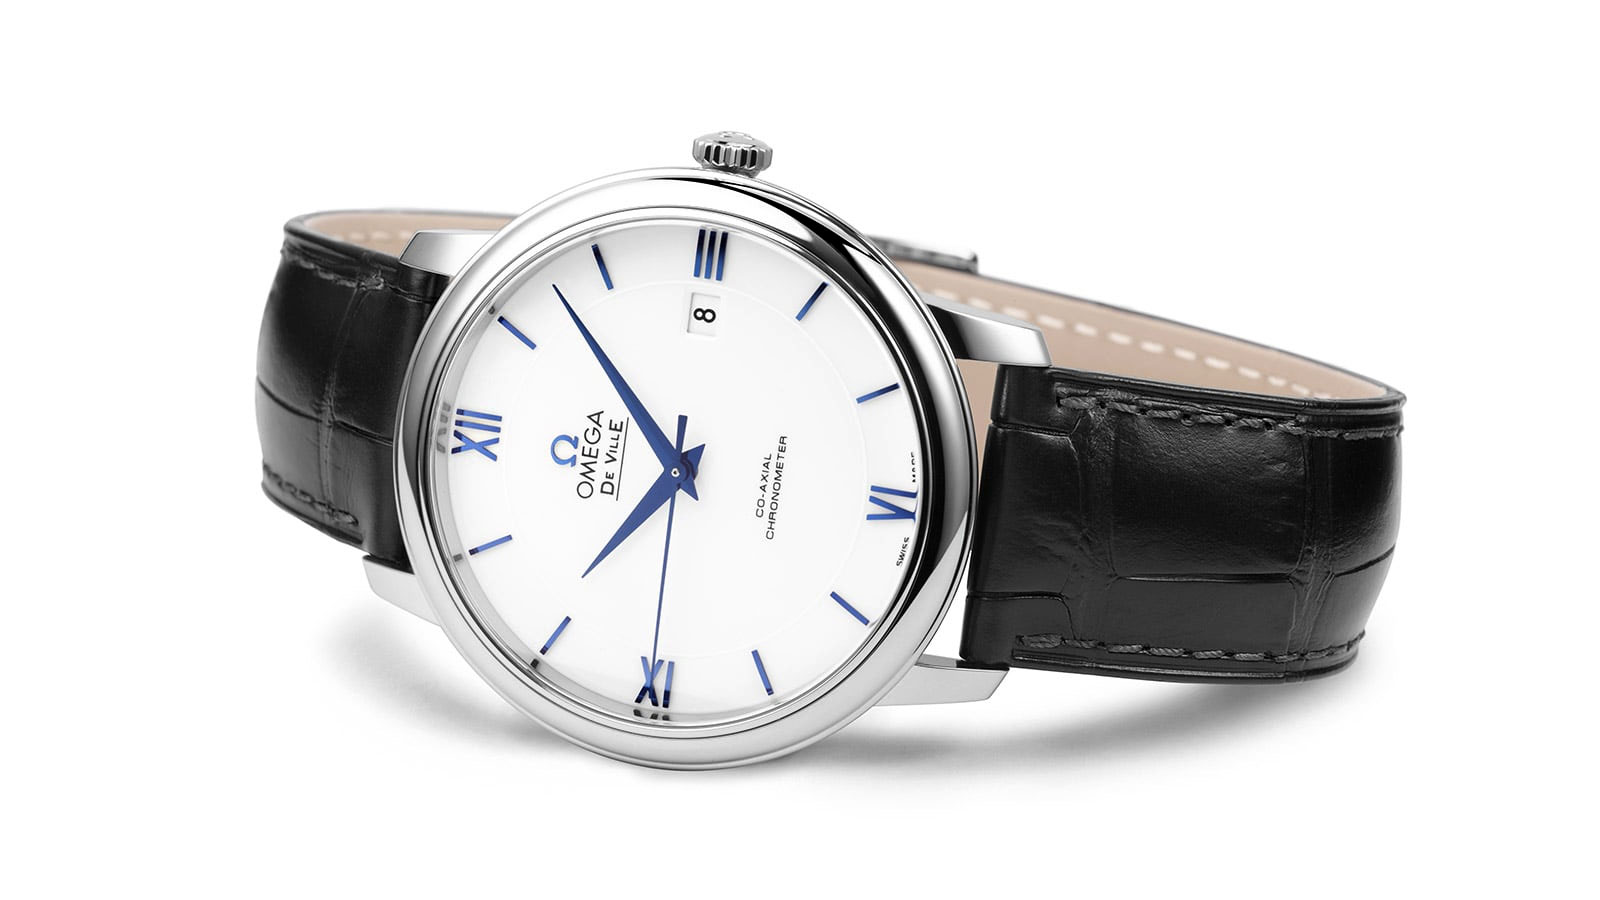 Classic De Ville Prestige men's watch with a simple white dial and black leather strap